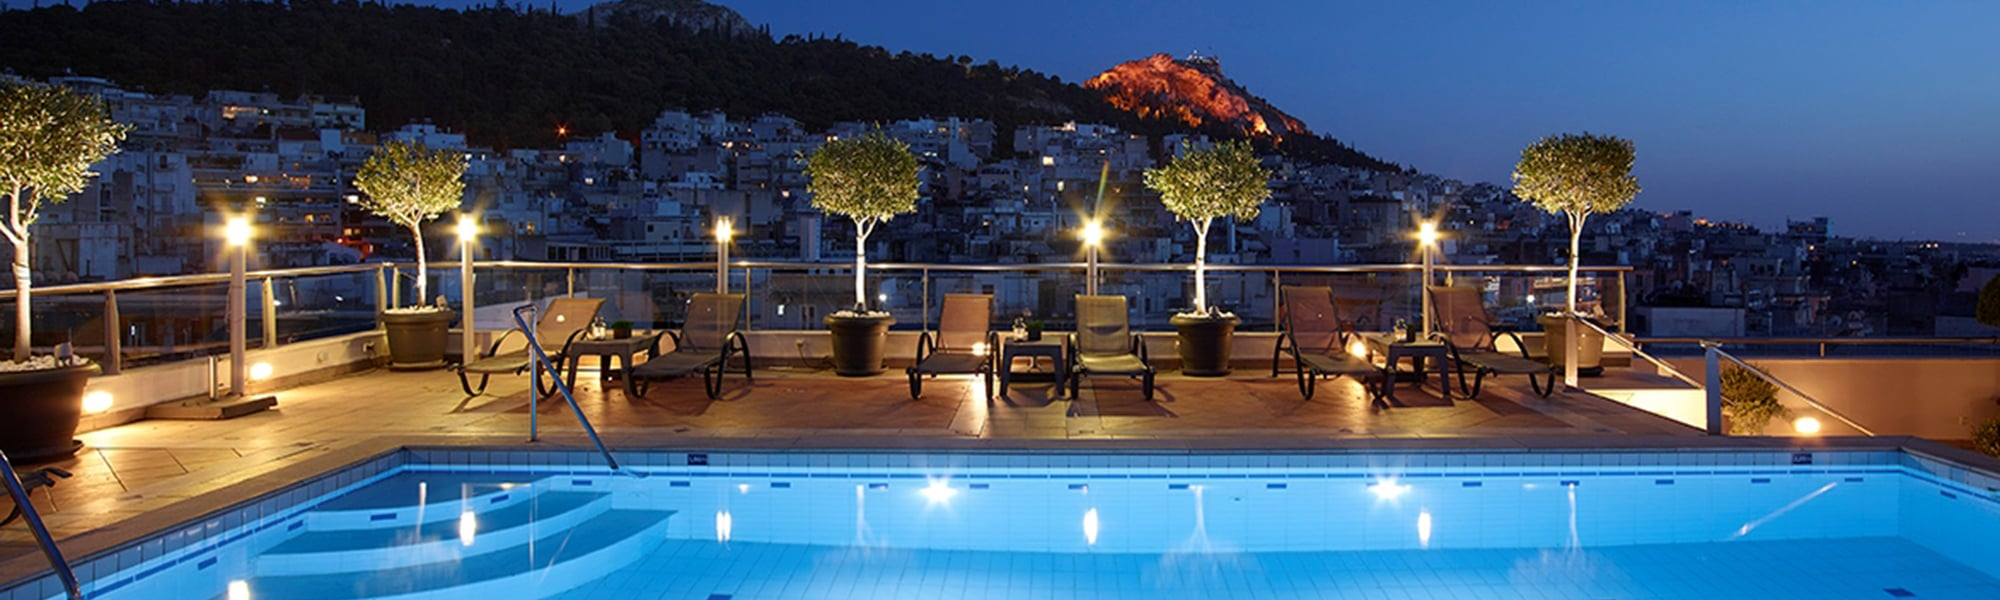 AthensZafoliaHotel_pool at night_slider.jpg